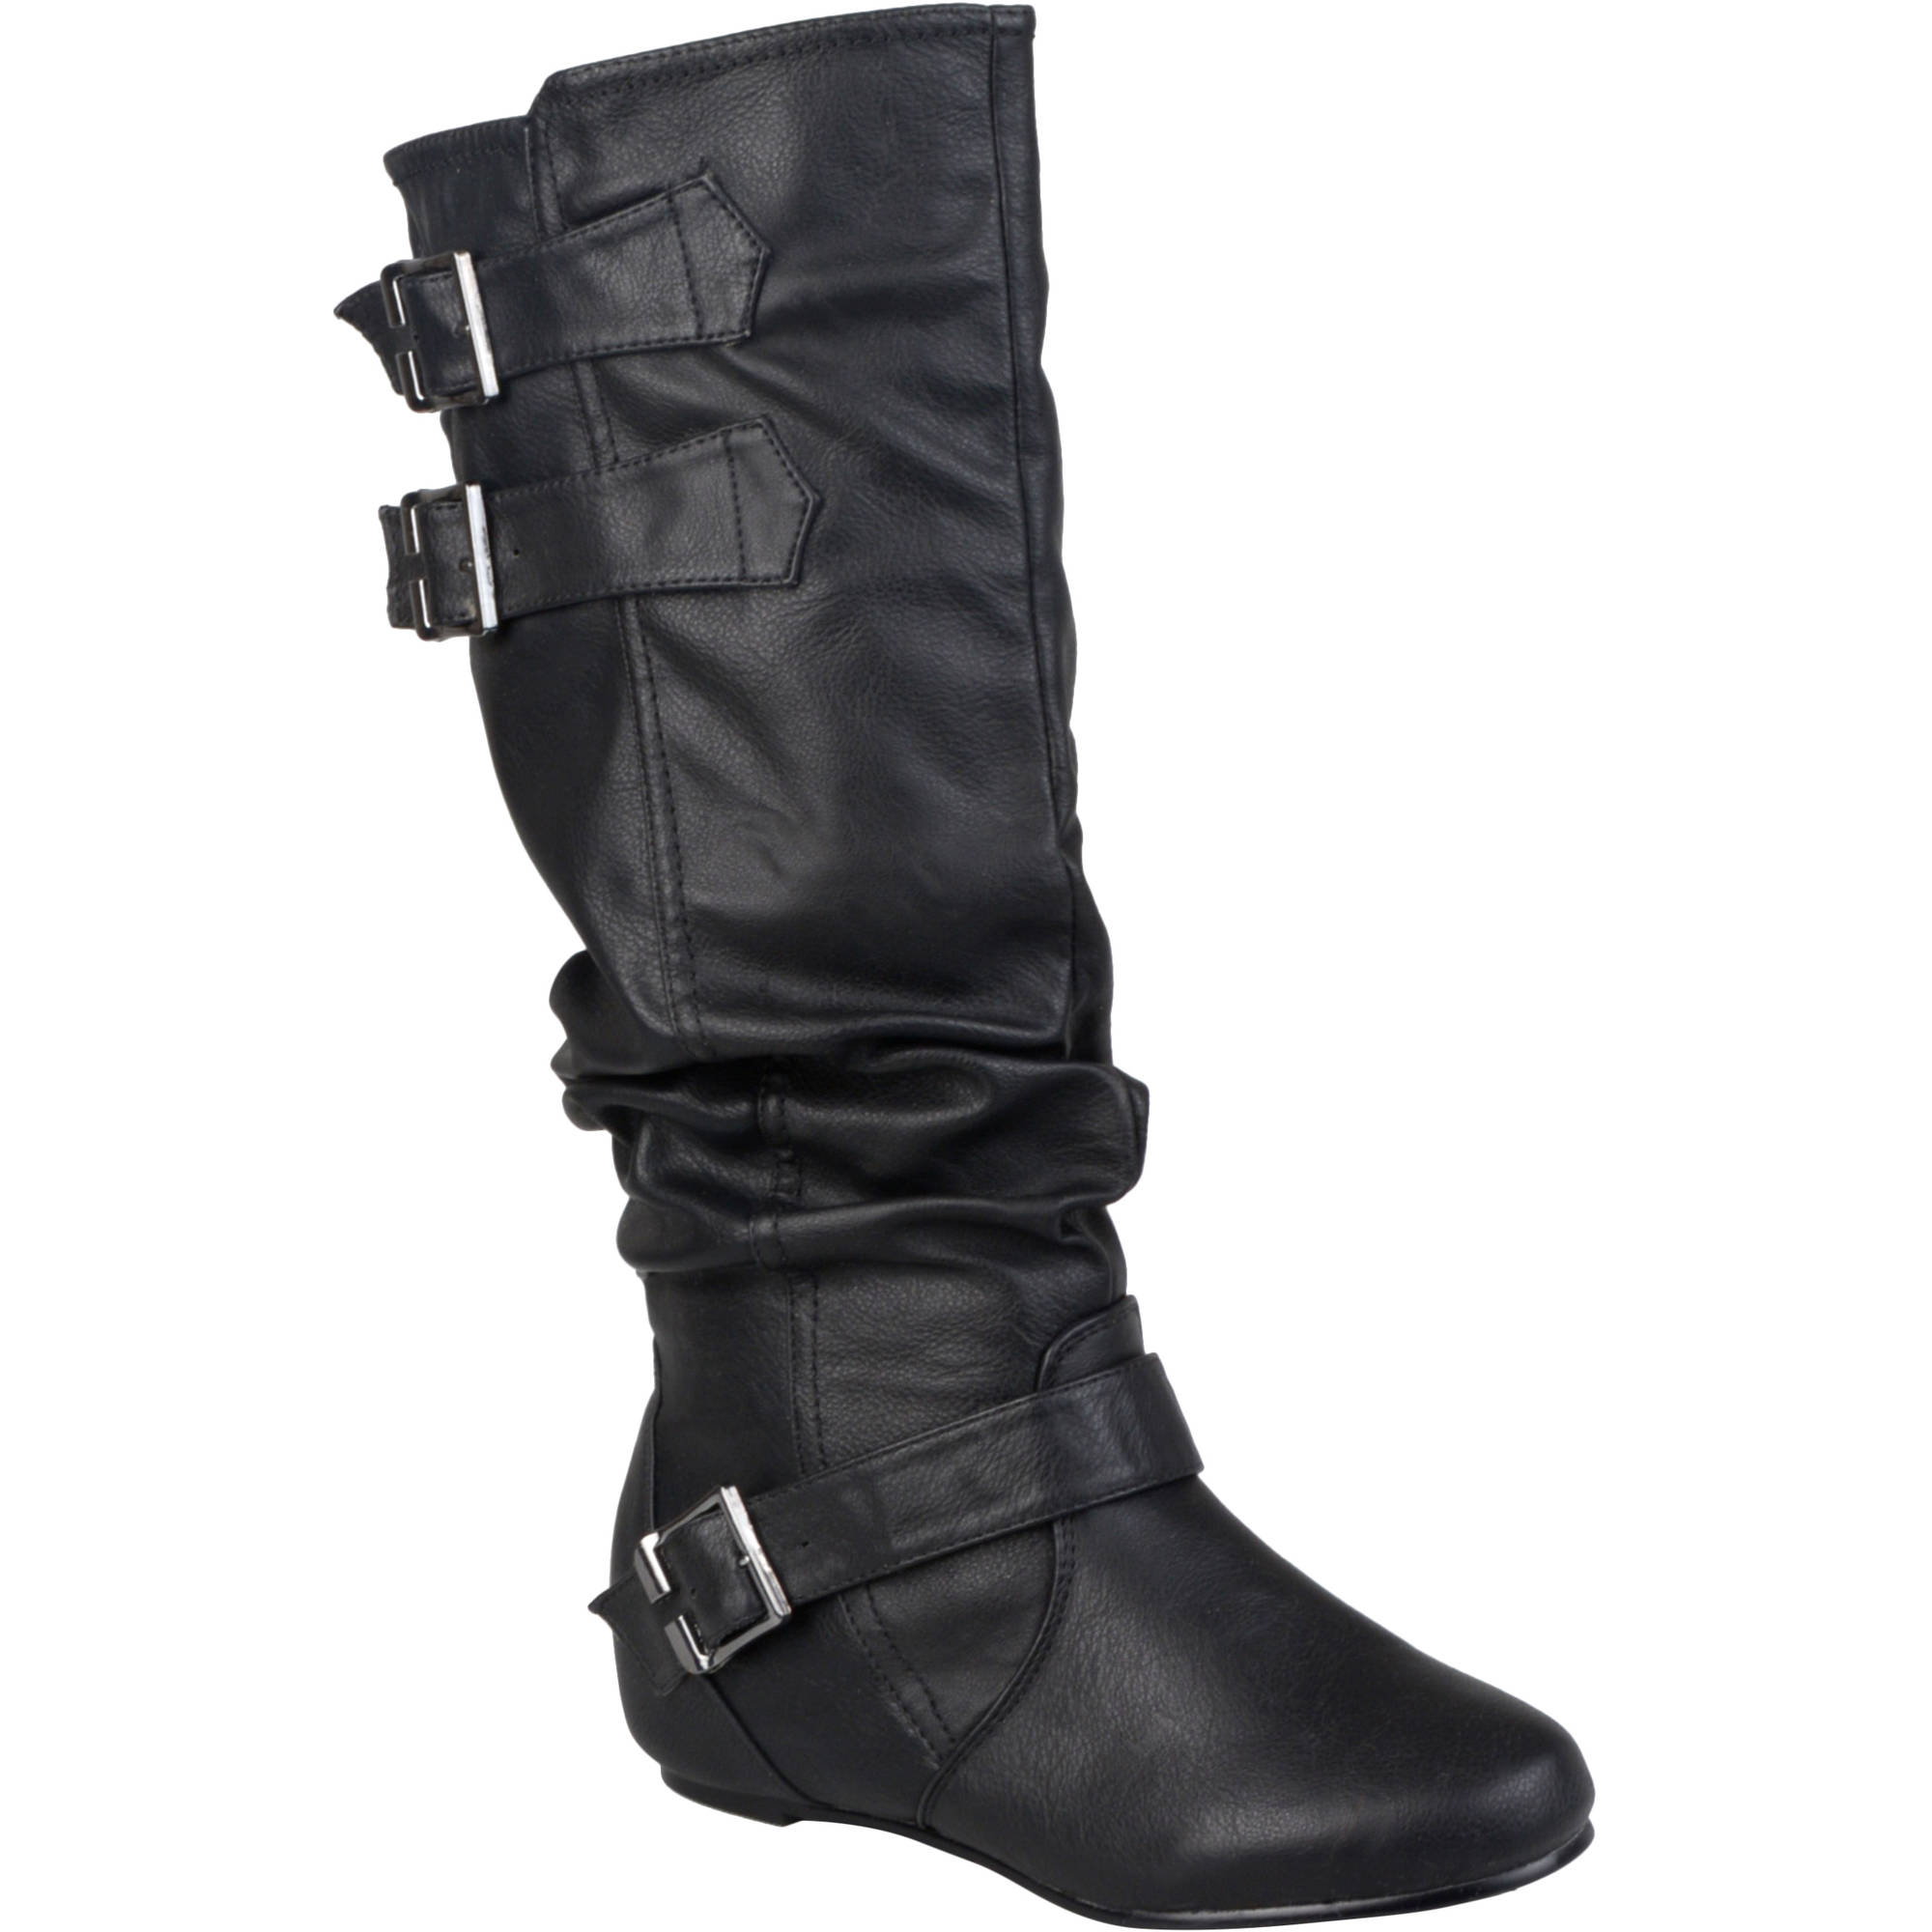 Brinley Co Women's Round Toe Buckle Detail Boots